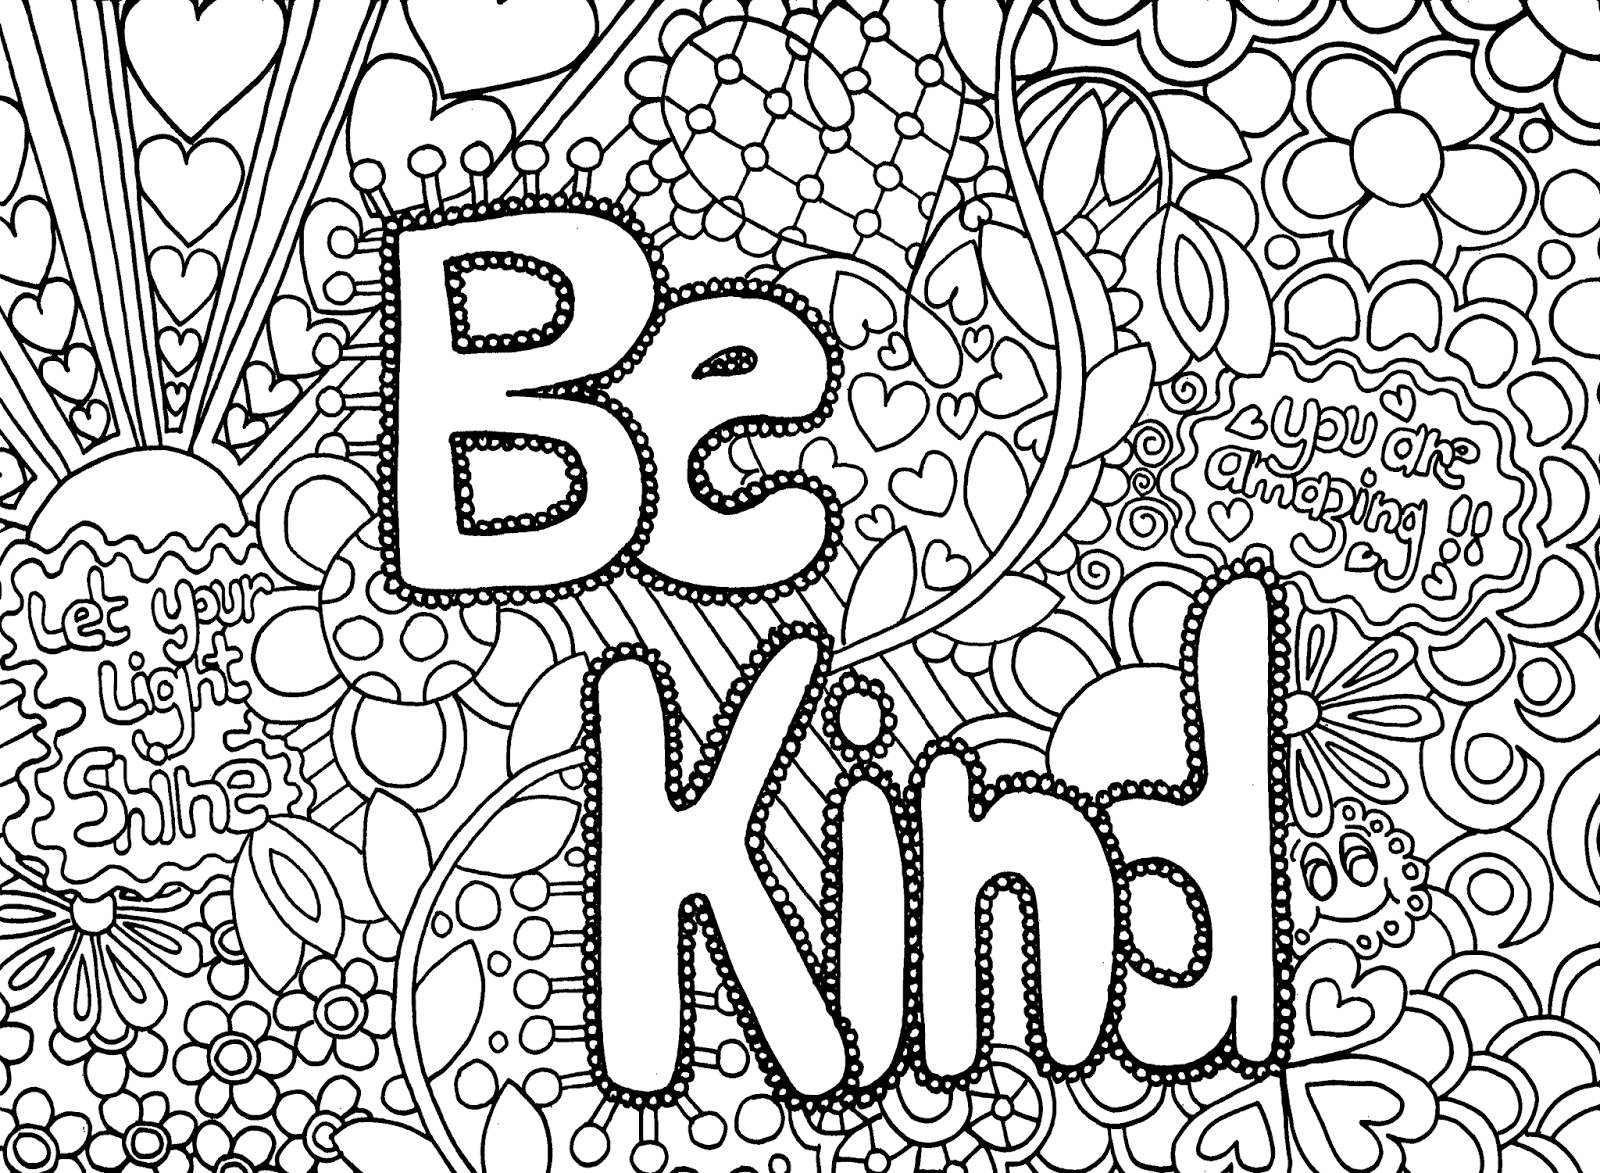 Coloring Pages Printable || PINTEREST Difficult Hard Coloring Pages ...